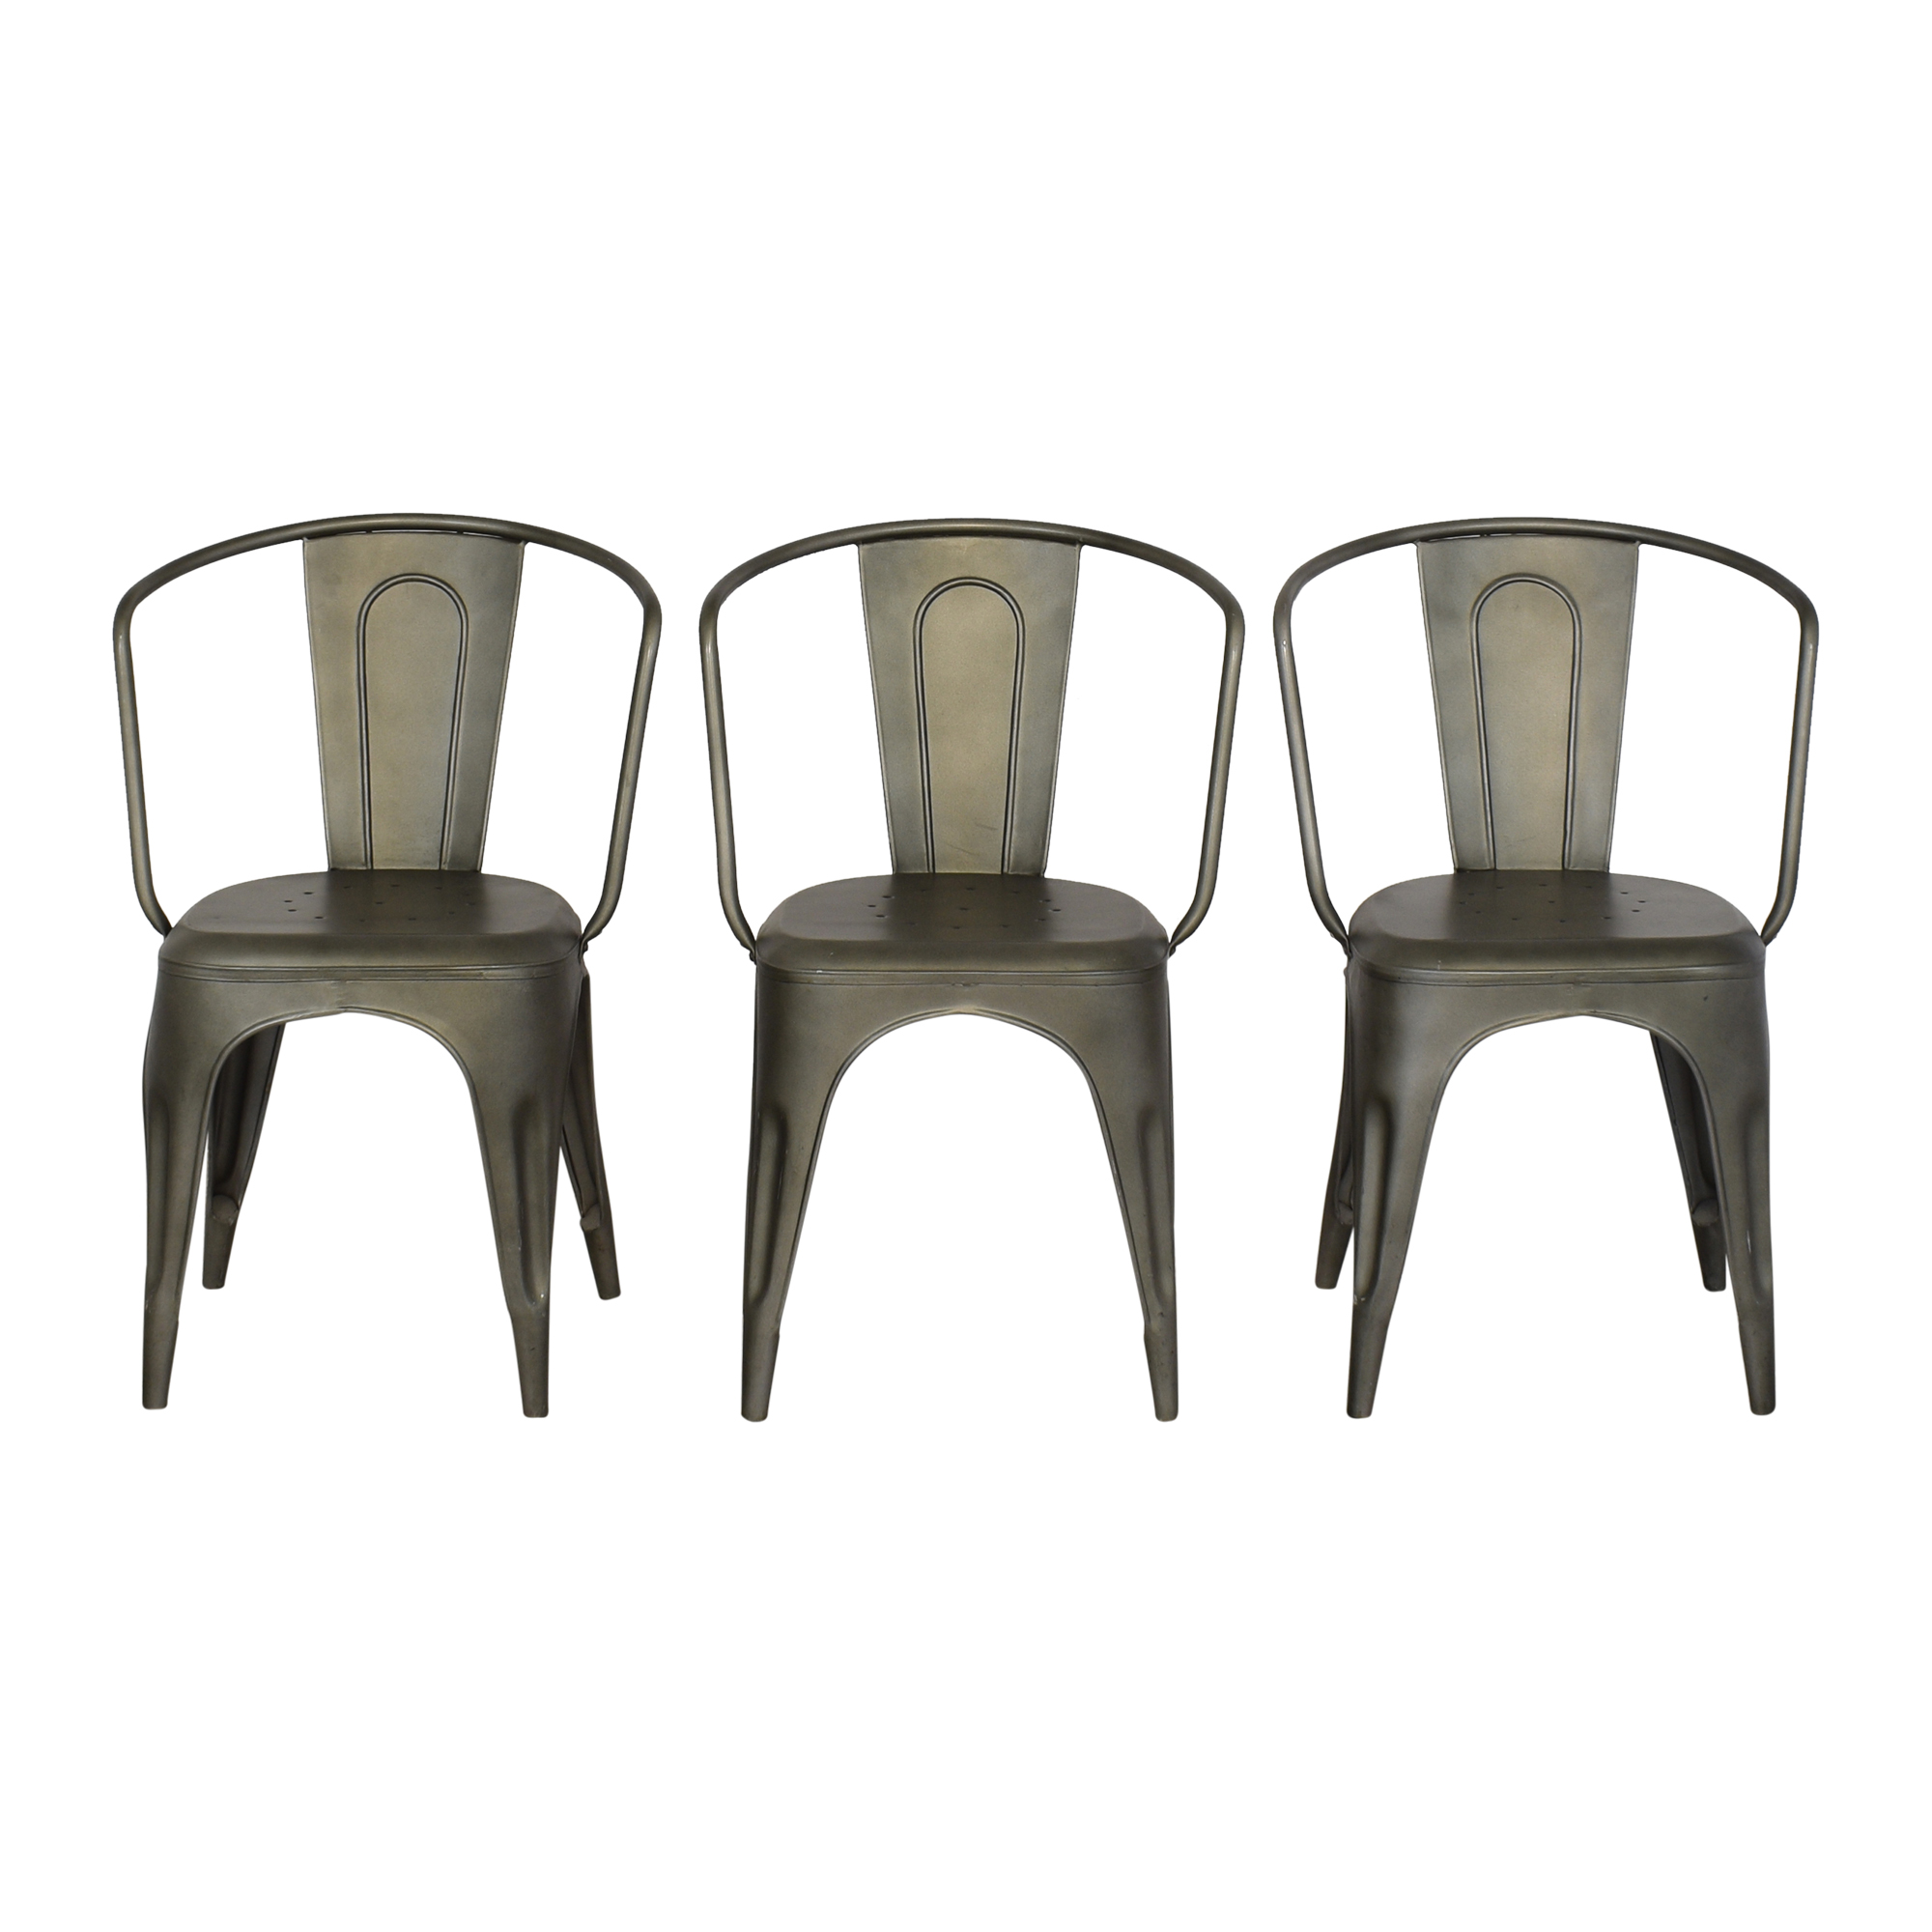 Restoration Hardware Restoration Hardware Marcel Armchairs on sale